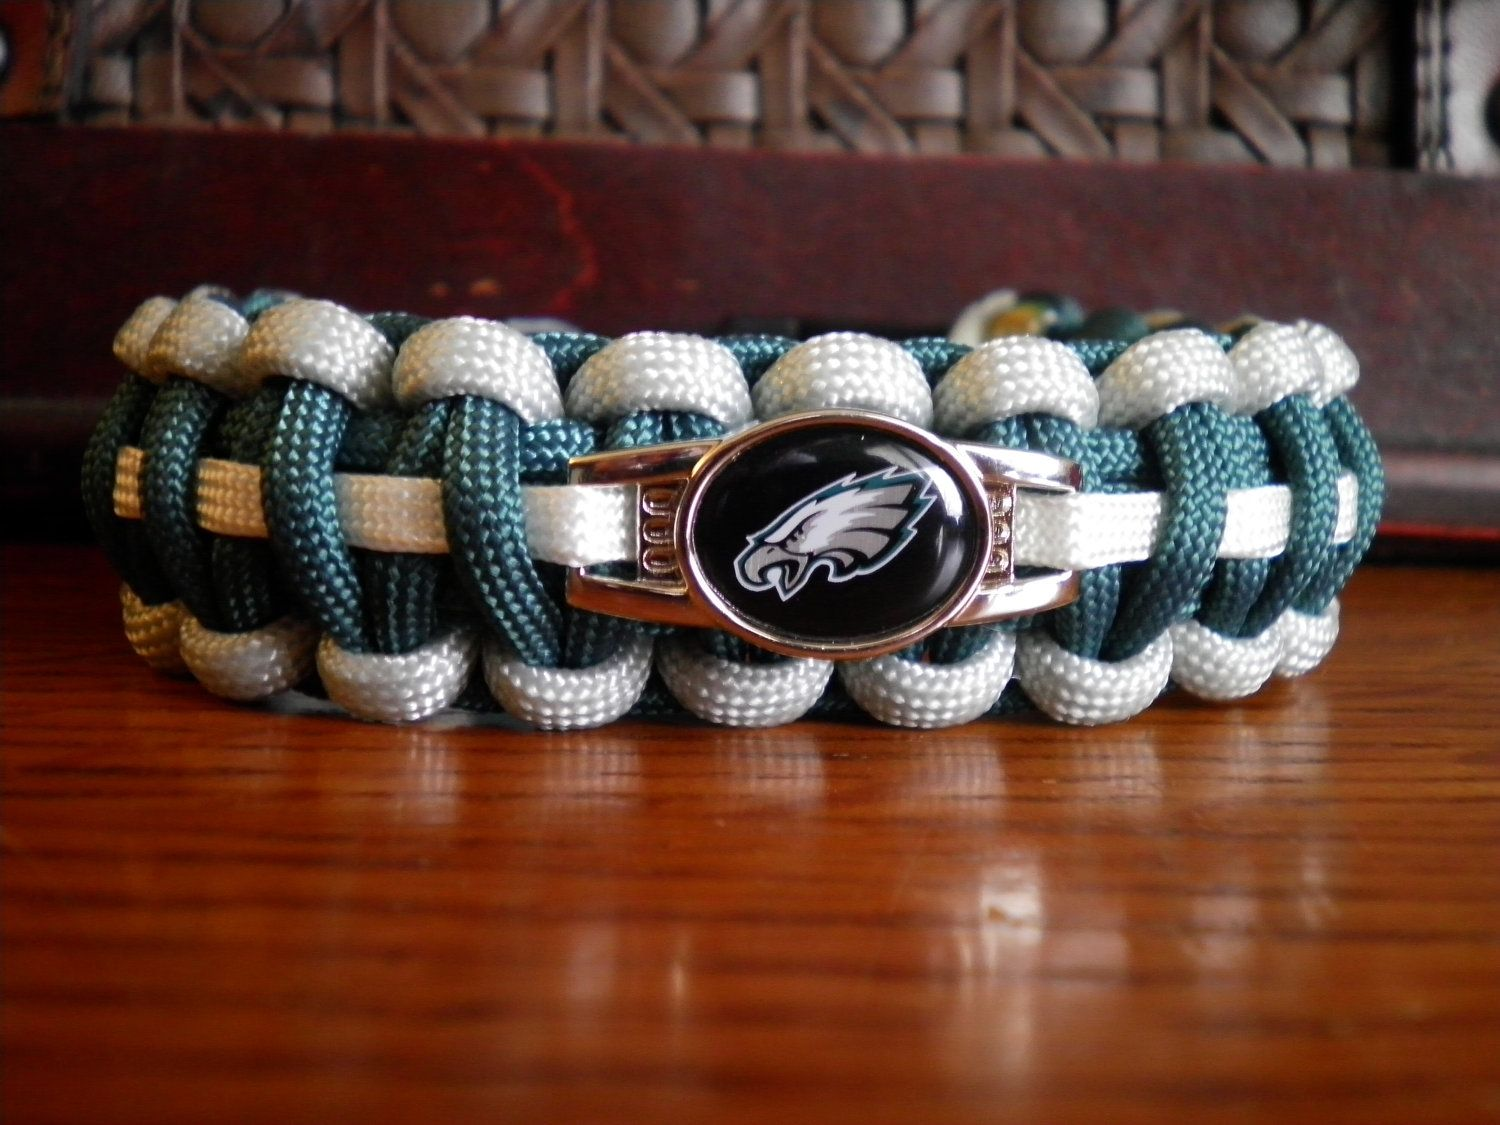 Nfl Football Paracord Bracelet Philadelphia Eagles By Duckhunter68 16 95